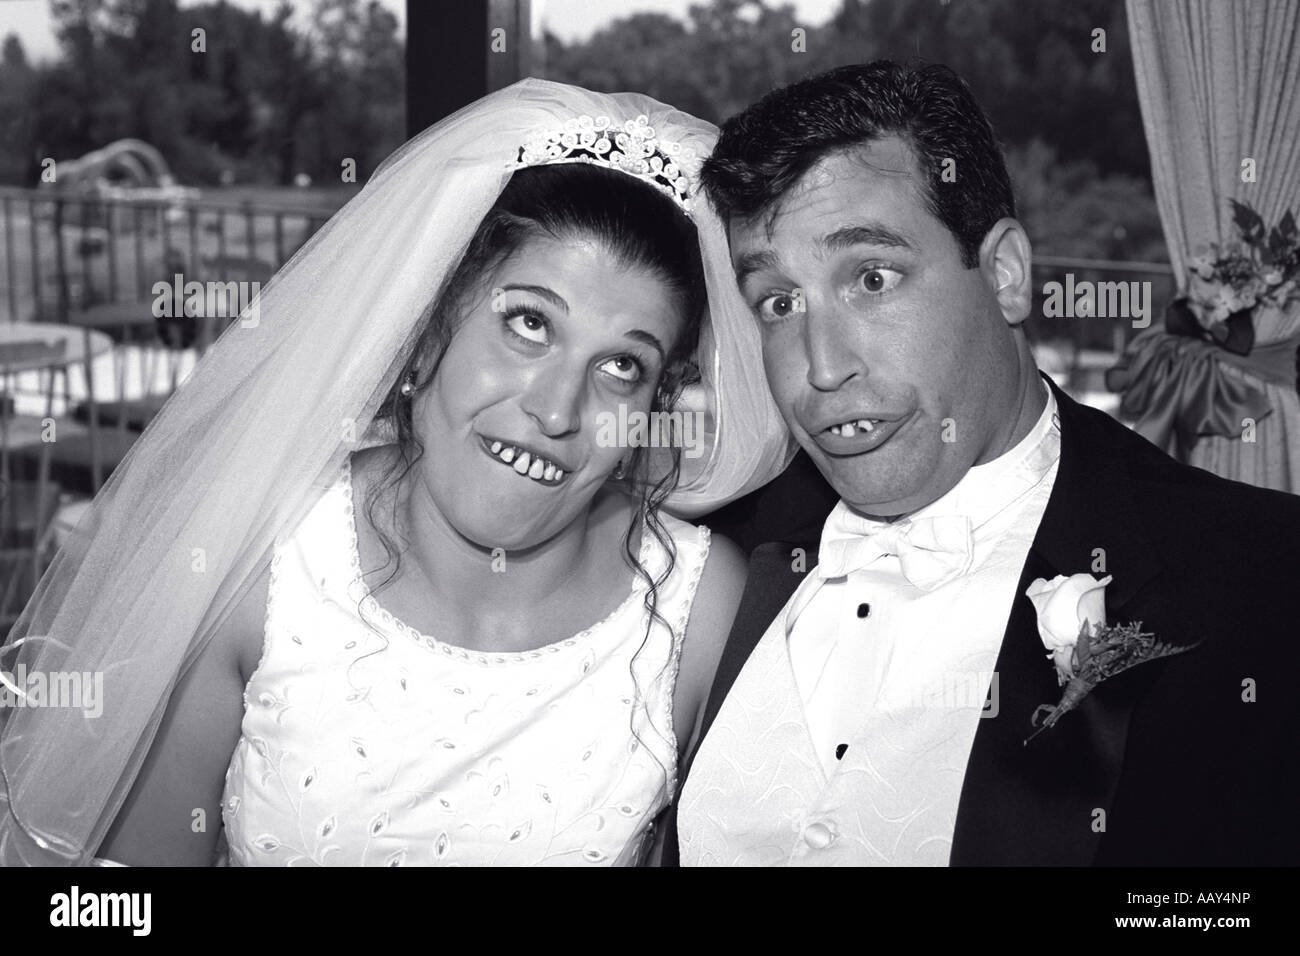 Goofy Couple At Wedding Making Funny Faces Bride And Groom Happy Silly Horizontal Black White